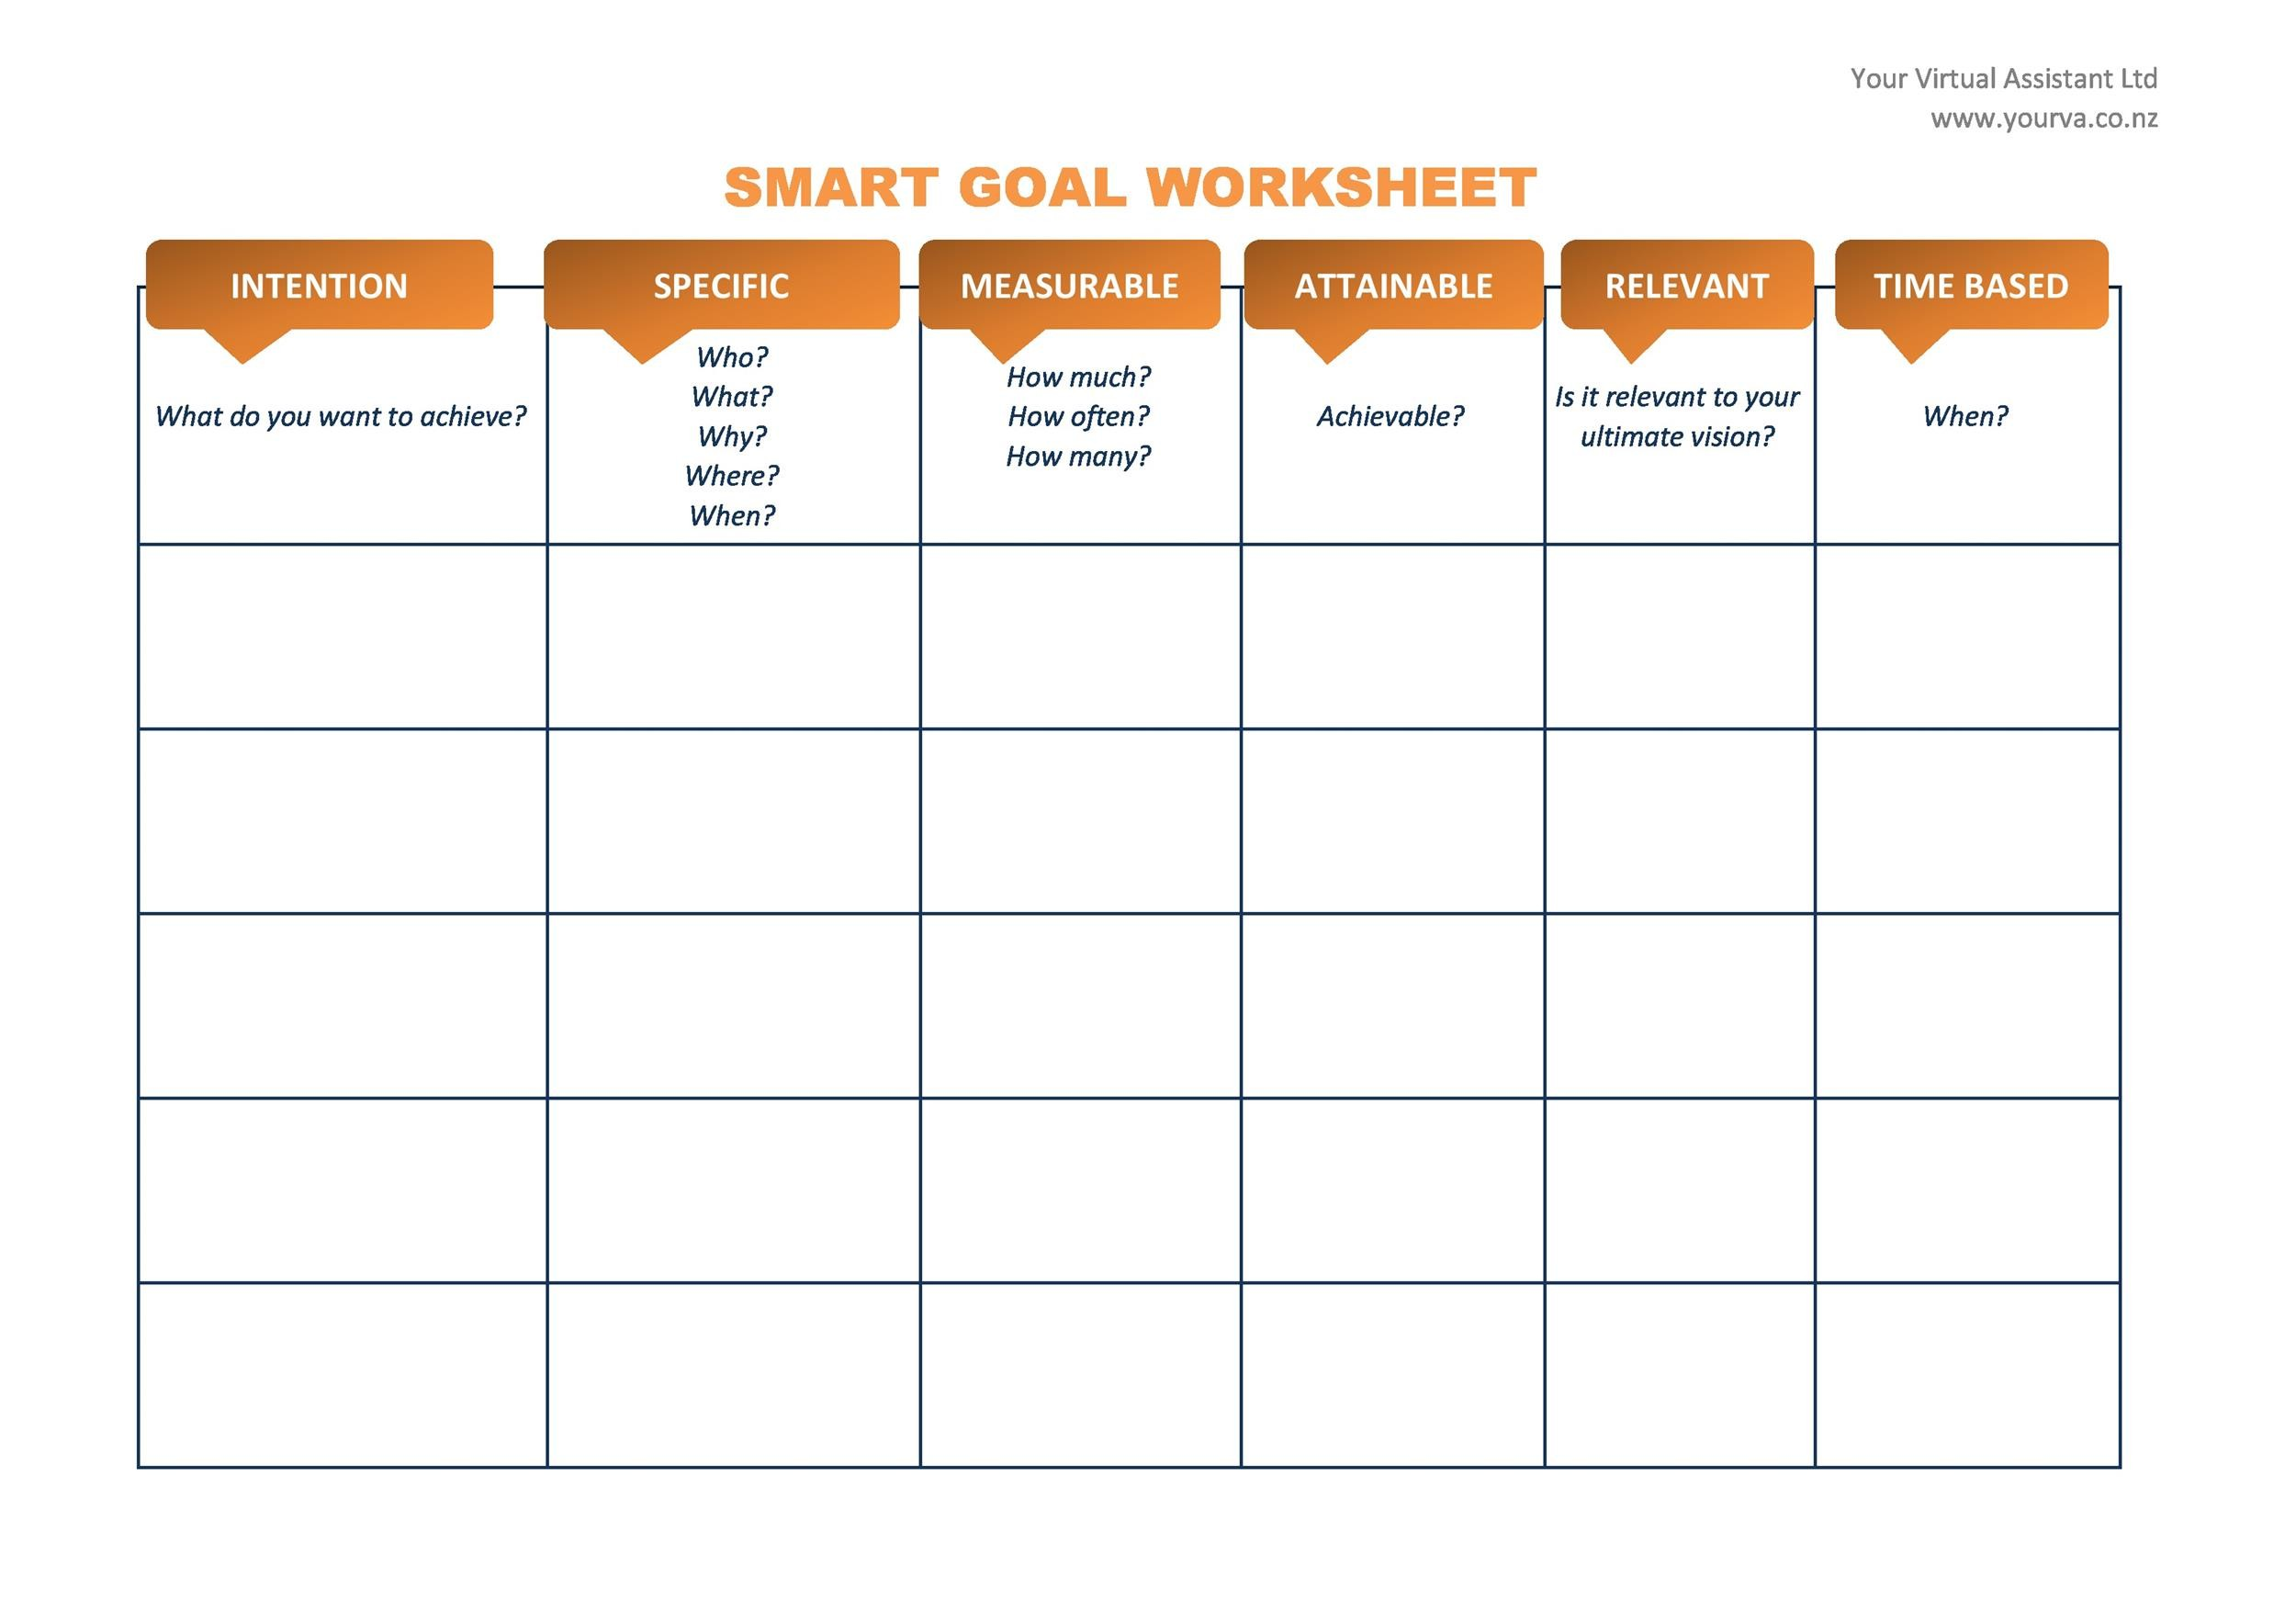 image regarding Free Printable Goal Sheets known as 48 Sensible Plans Templates, Illustrations Worksheets ᐅ Template Lab